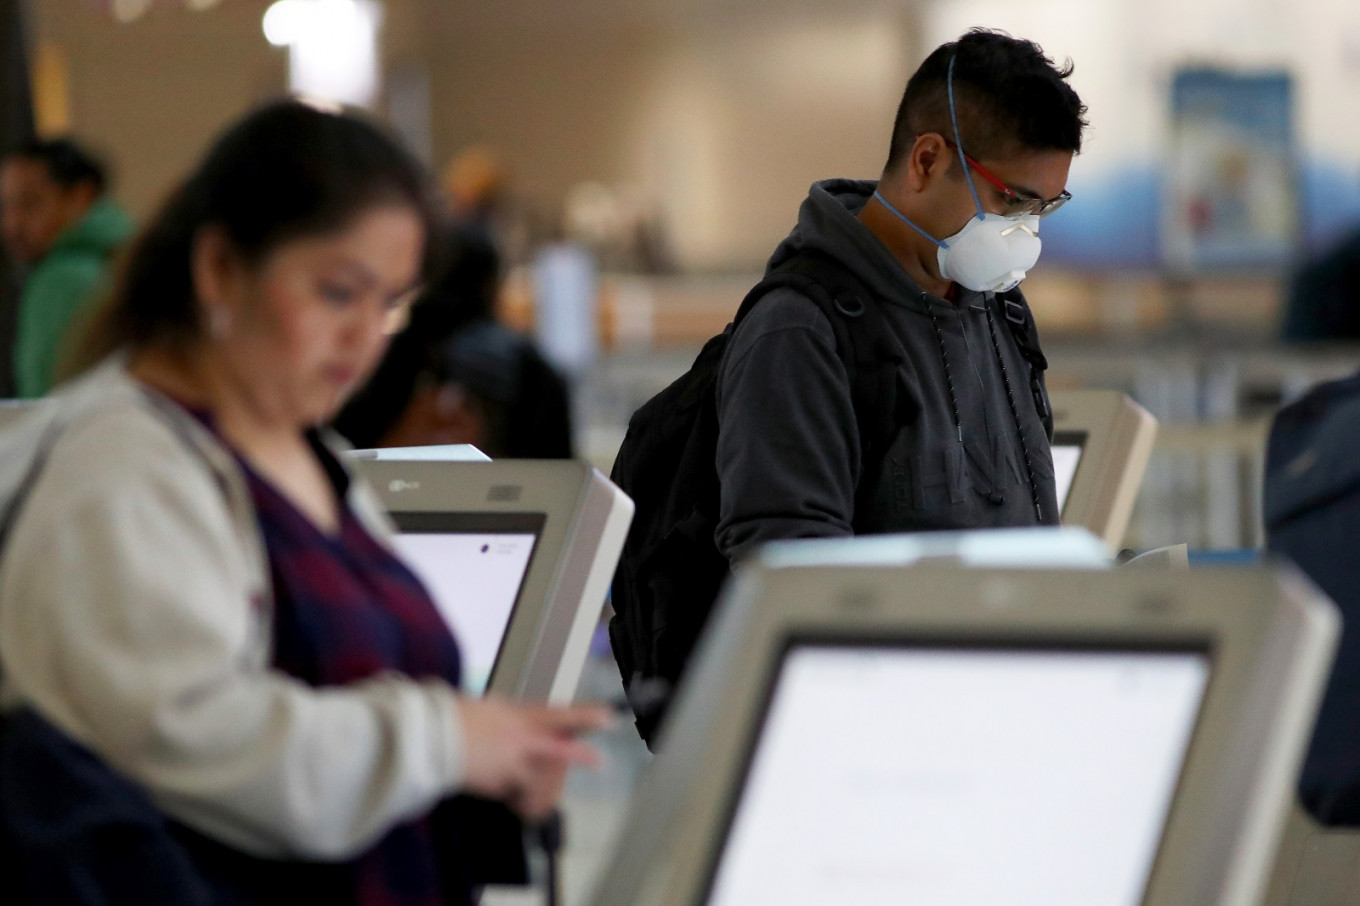 Airlines ask EU, White House to adopt COVID-19 testing program for passengers